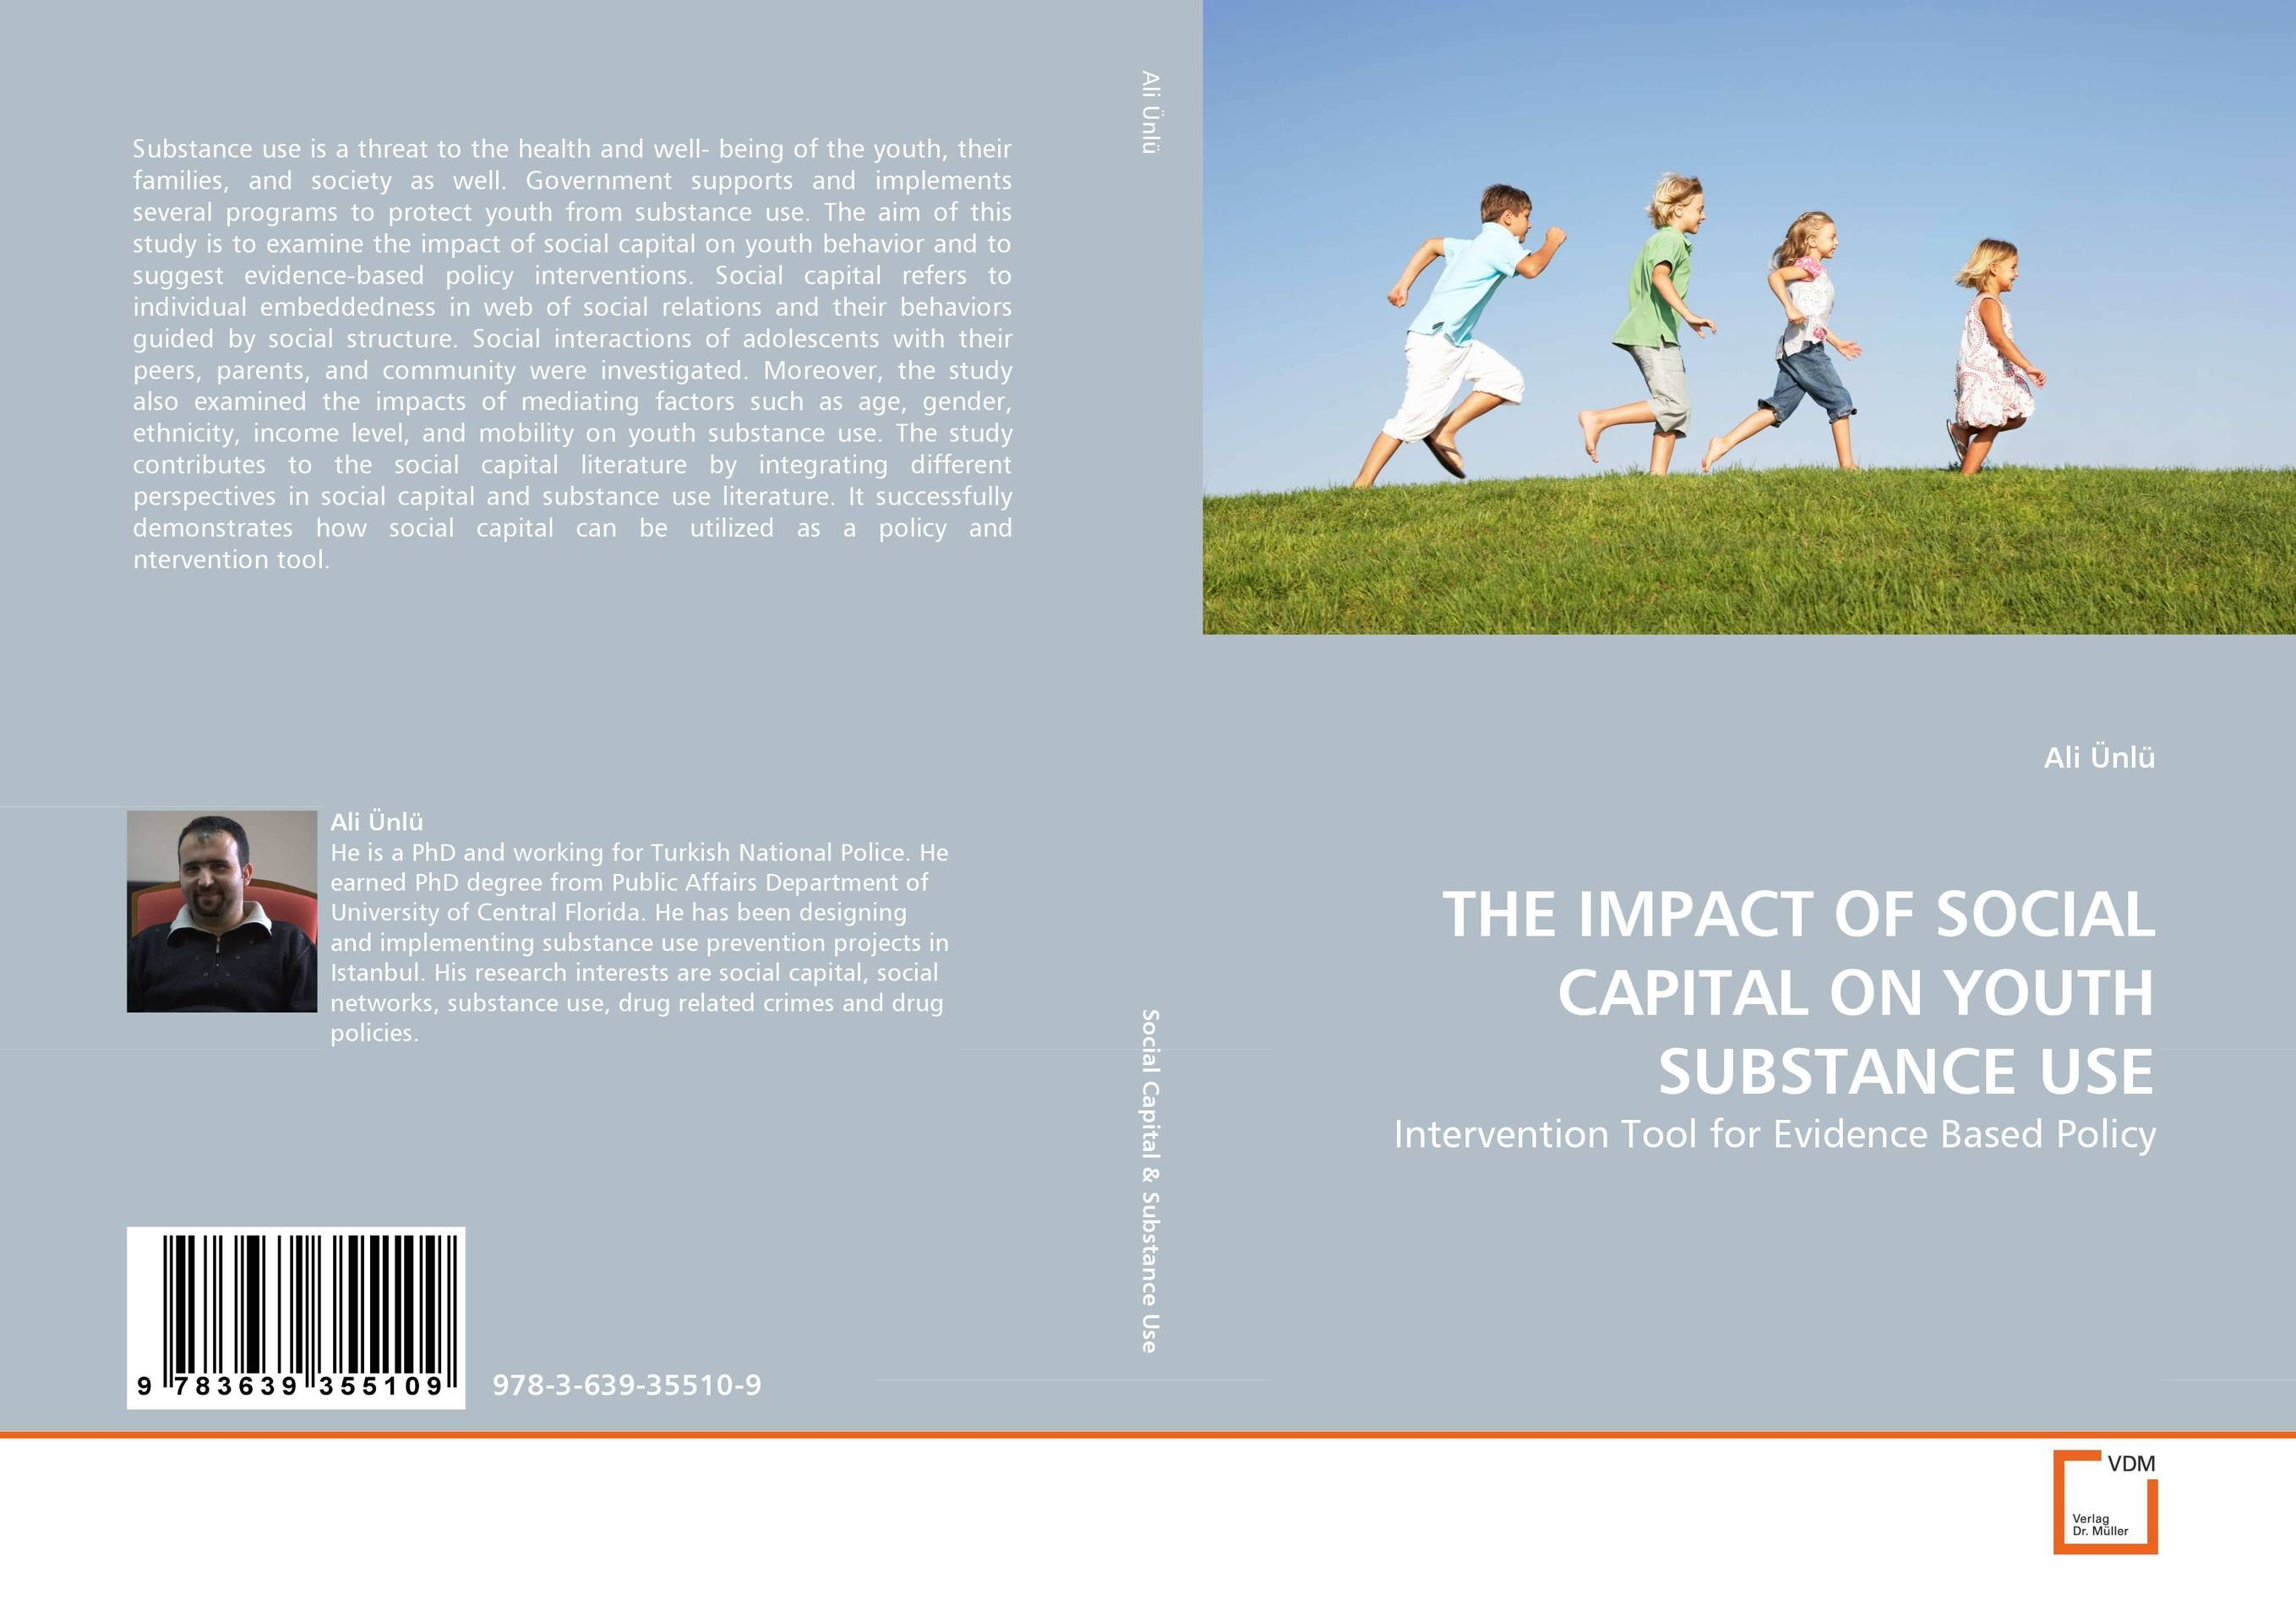 THE IMPACT OF SOCIAL CAPITAL ON YOUTH SUBSTANCE USE i manev social capital and strategy effectiveness an empirical study of entrepreneurial ventures in a transition economy